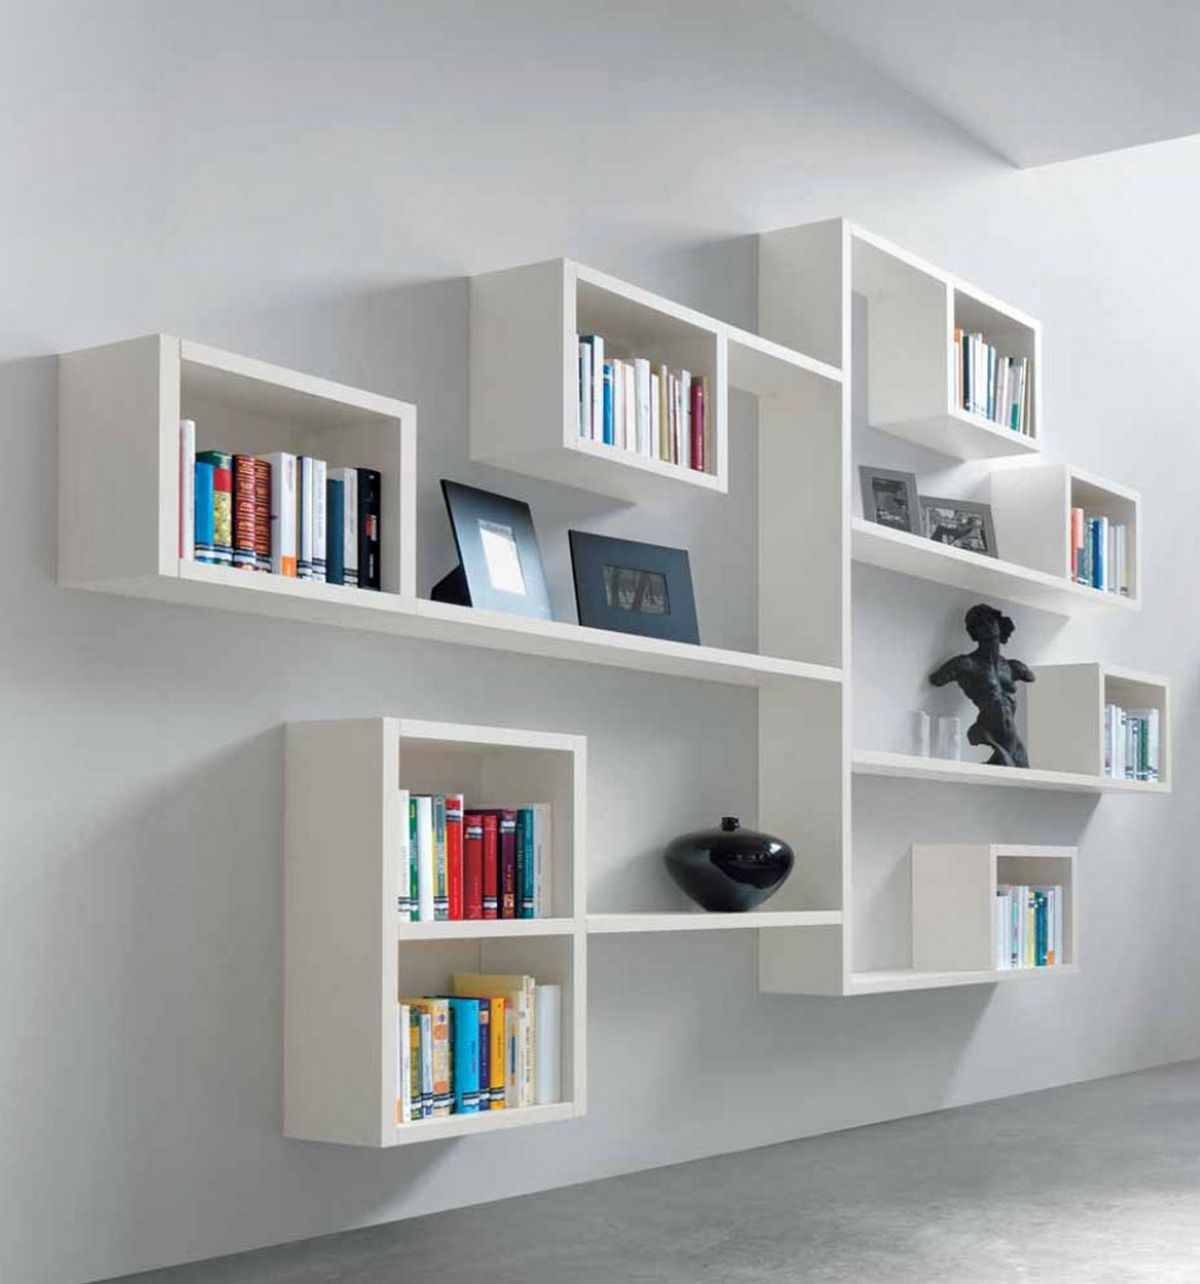 nice Wall Mounted Shelves White Part - 9: Cabinet u0026 Shelving : White Wall Shelves Images Traditional White Wall  Shelves Wall Shelving Unitsu201a Decorative Shelvesu201a Home Depot Shelves plus  Cabinet u0026 ...